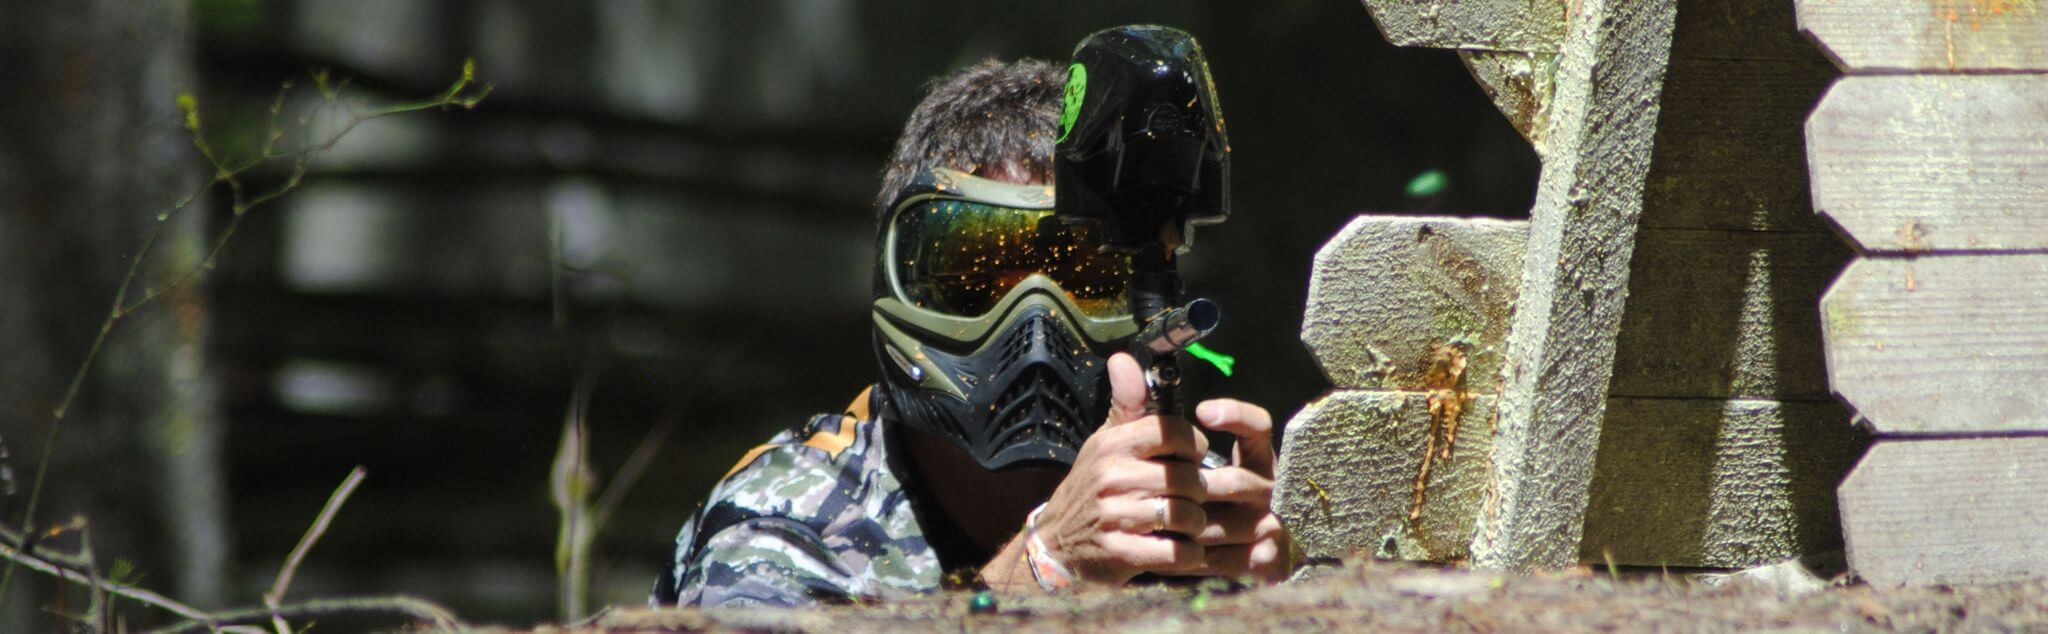 Paintball in Leicestershire